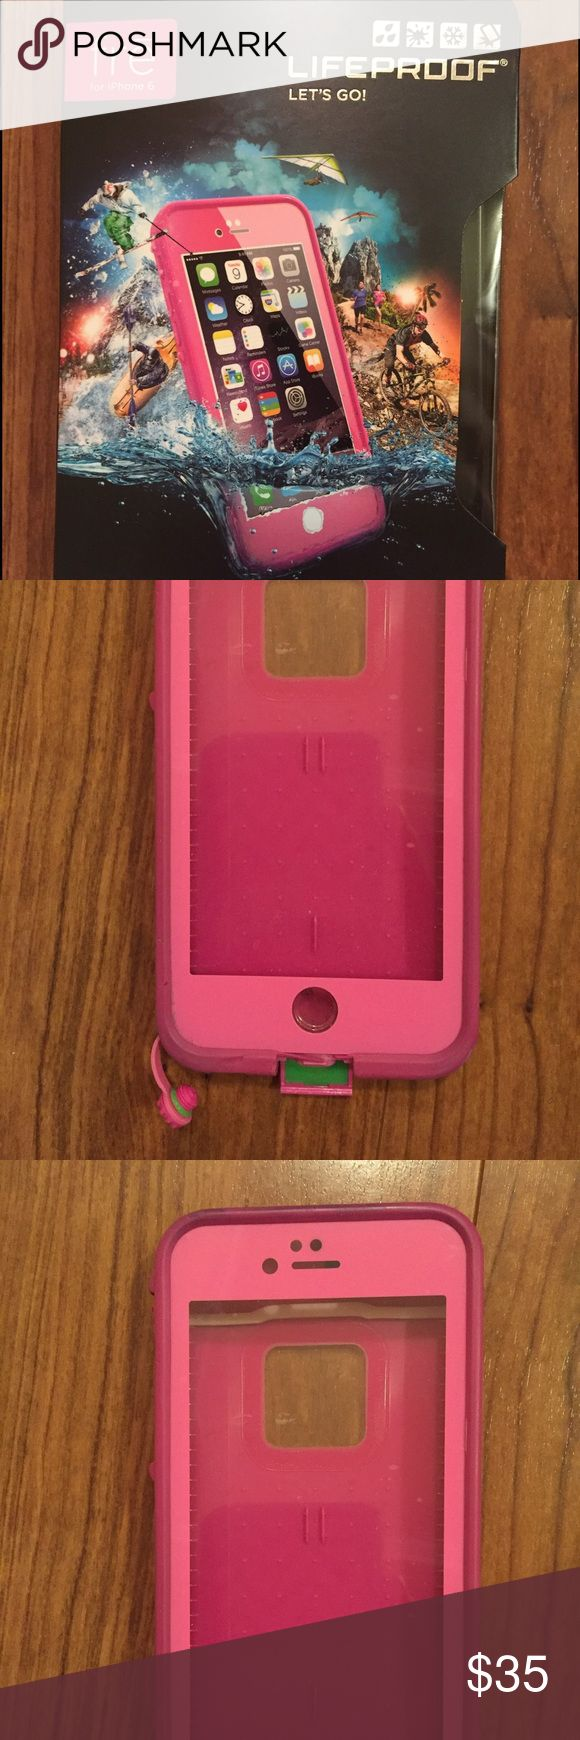 ALL ACCESSORIES - Lifeproof Fre for iPhone 6 Lifeproof Fre for iPhone 6 in hot pink. Has some normal wear, but was only used for a few months because I'm an OtterBox girl. Case is in the box with the original accessories, the cleaning cloth and the headphone adaptor. Plastic cover over the screen also admits that it is not brand new, but again, the case is in good condition. Some scuffs on the back (see photo). Water proof. Dirt proof. Snow proof. Shock proof. LifeProof Accessories Phone…